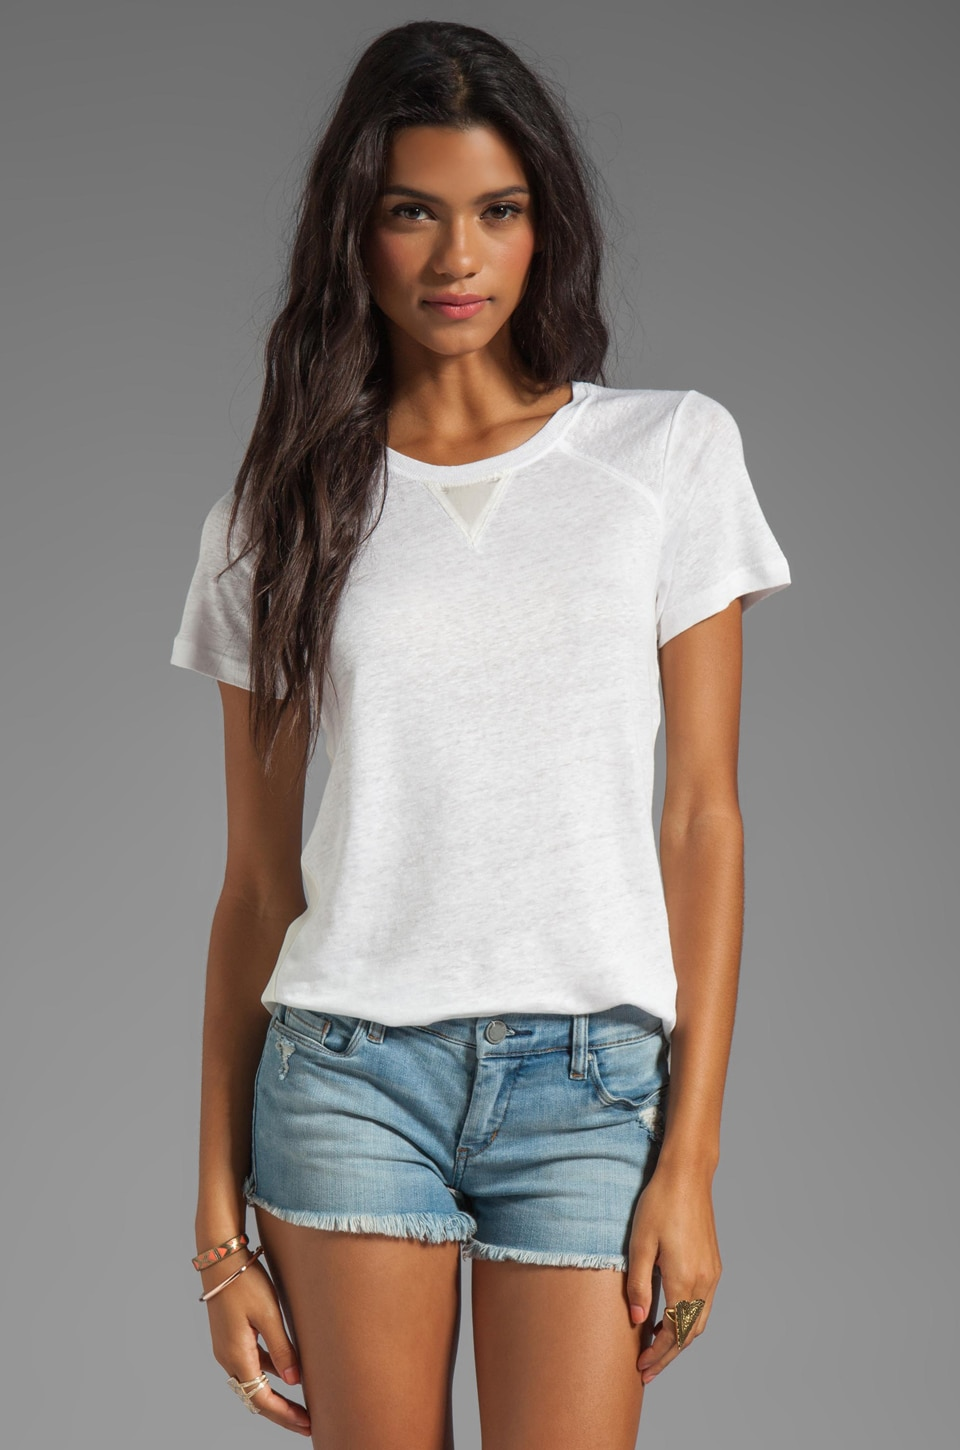 Marc by Marc Jacobs Martha Jersey Short Sleeve Top in Wicken White